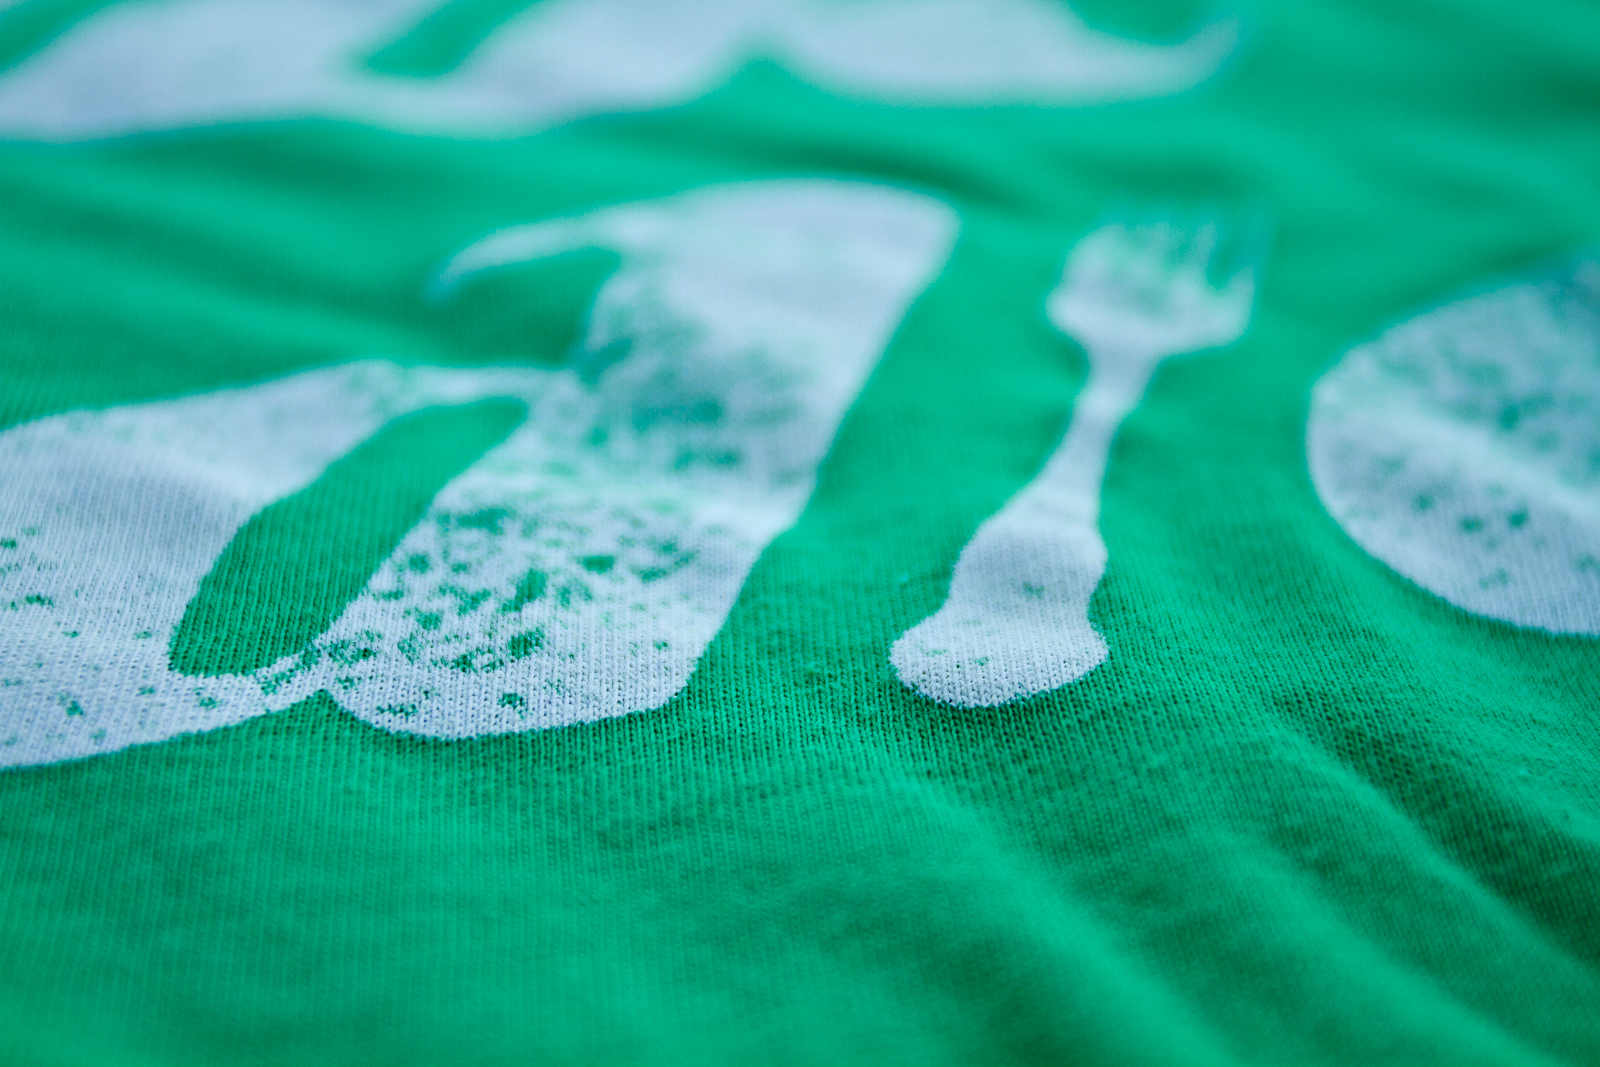 Closeup of the super cool water based discharge screen printed design